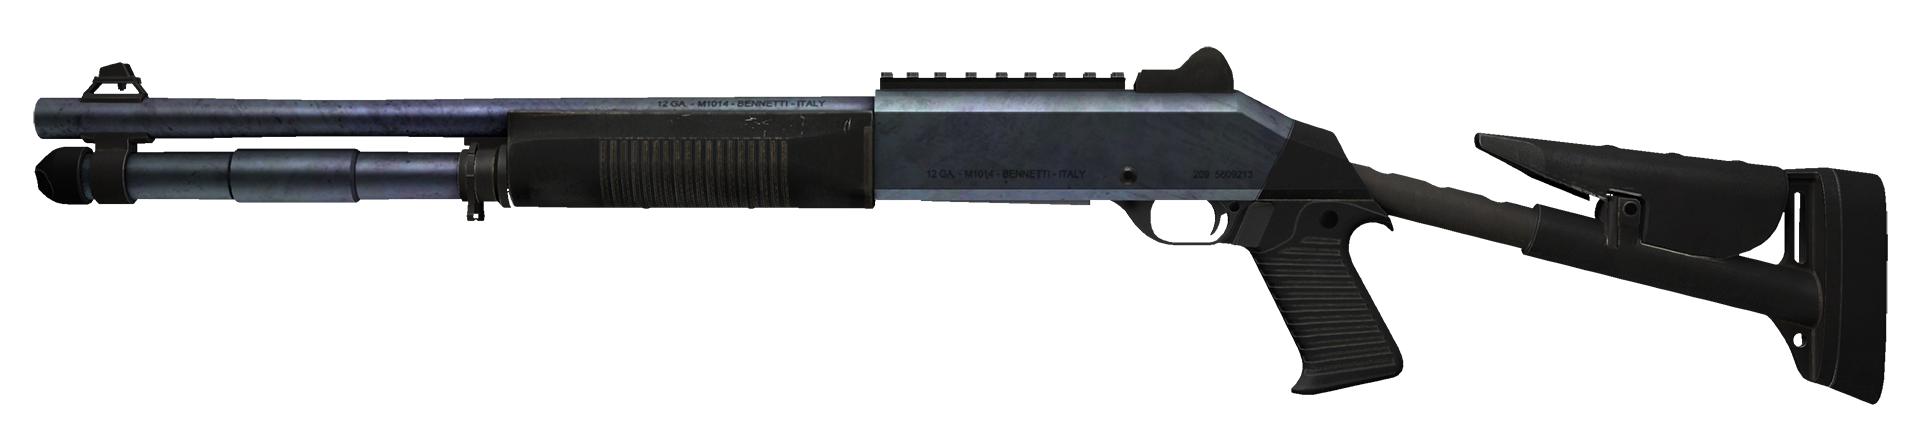 XM1014 Blue Steel Large Rendering